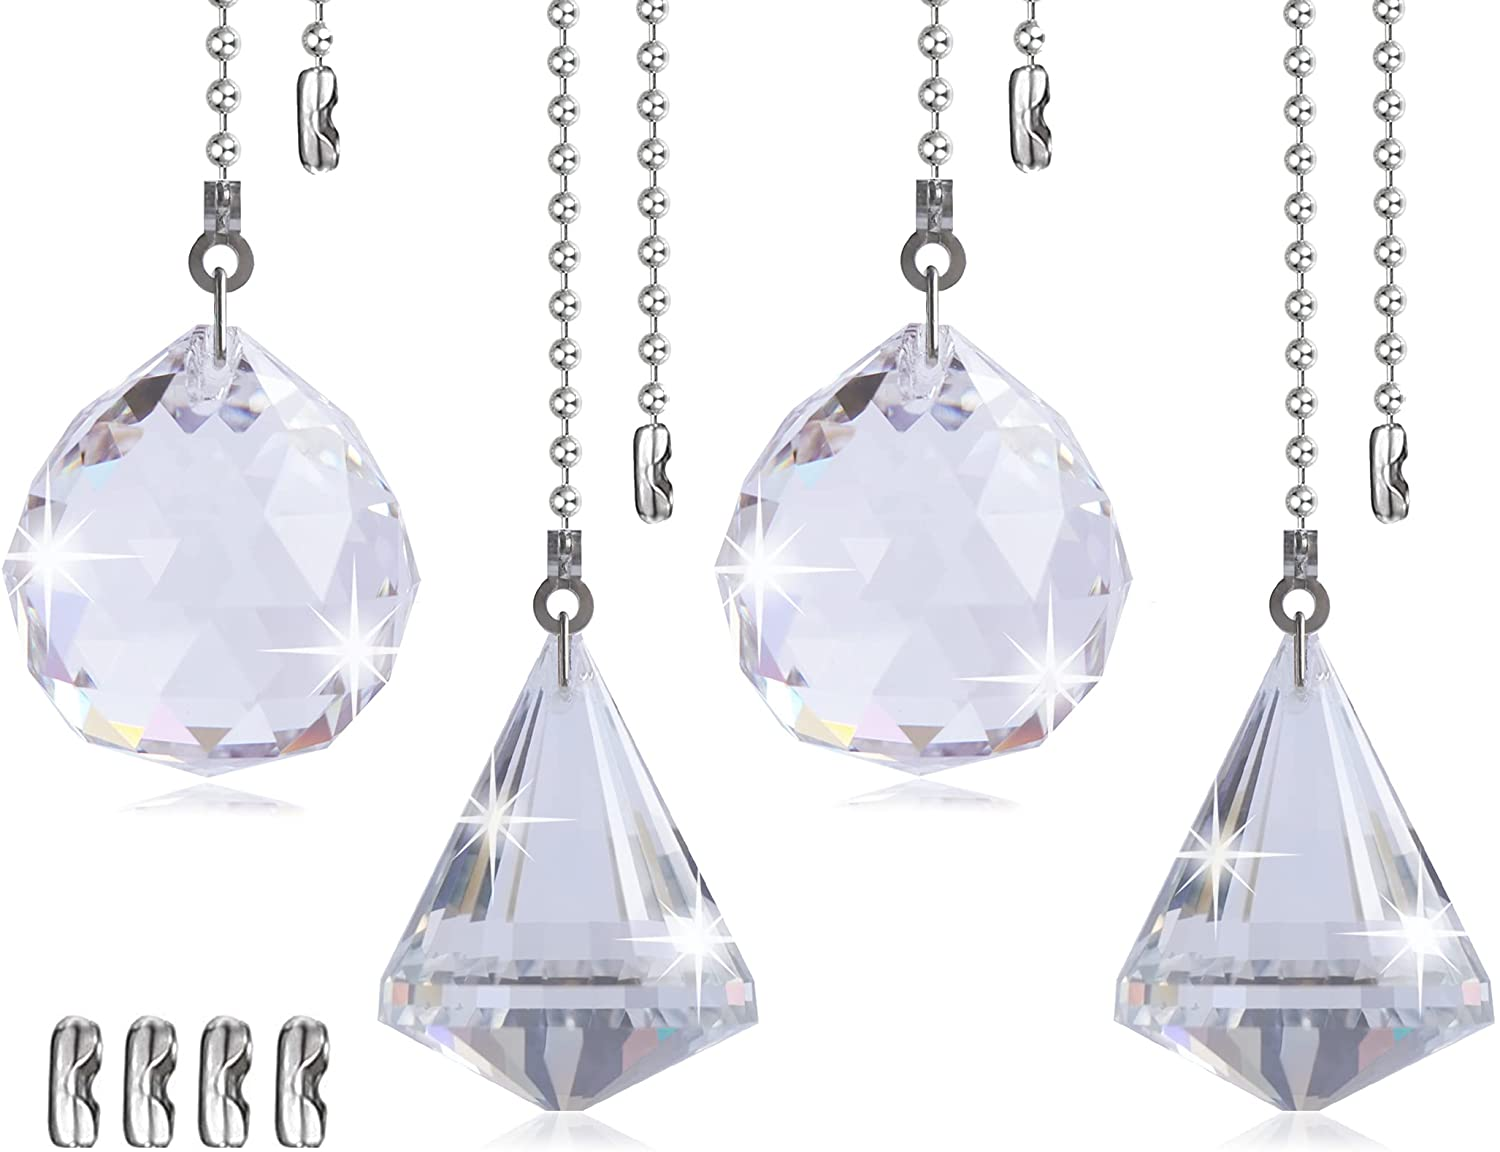 Petute Ceiling Fan Pull Chain Crystal Extender Decorat 4 Pieces Los Sales Angeles Mall